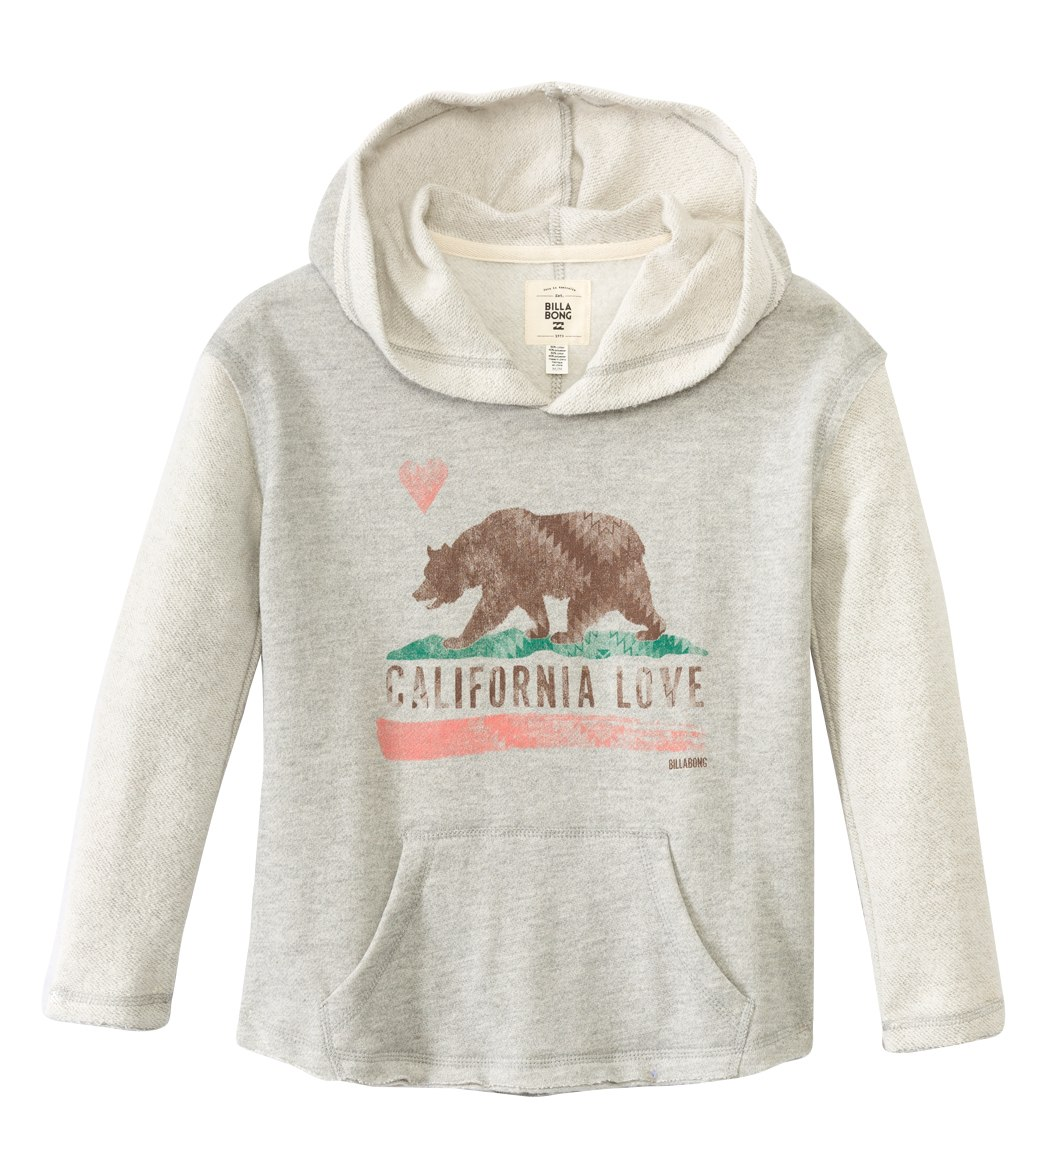 90% Off clearance sale list + Free Shipping coupons: Discounts for bukahatene.ml, Nordstrom, Kohl's, Target, bukahatene.ml, Eddie Bauer Outlet, Boden, Old Navy.